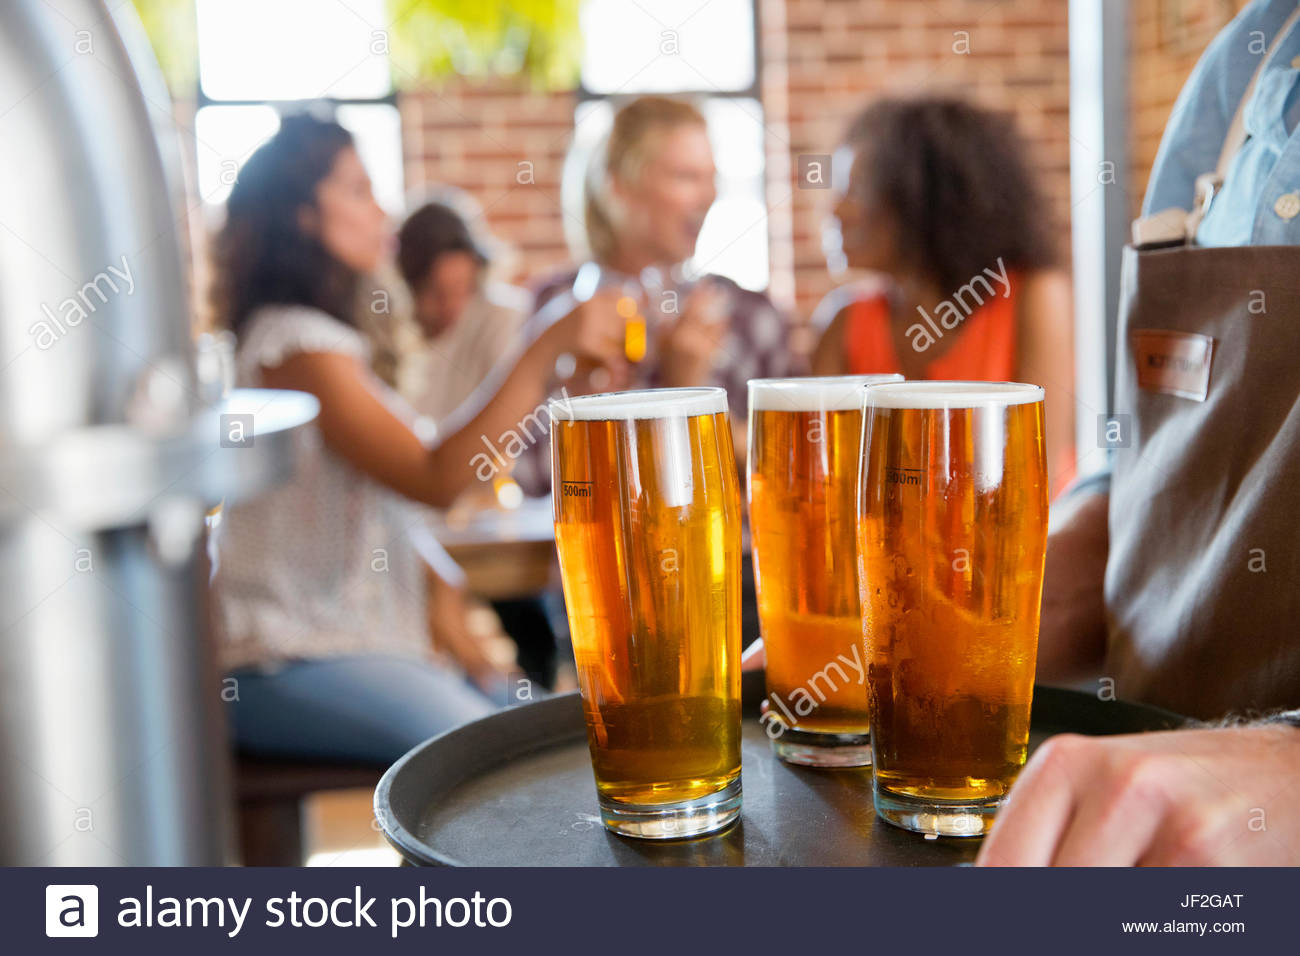 Close Up Of Pints Of Beer With Customers Drinking In Background - Stock Image